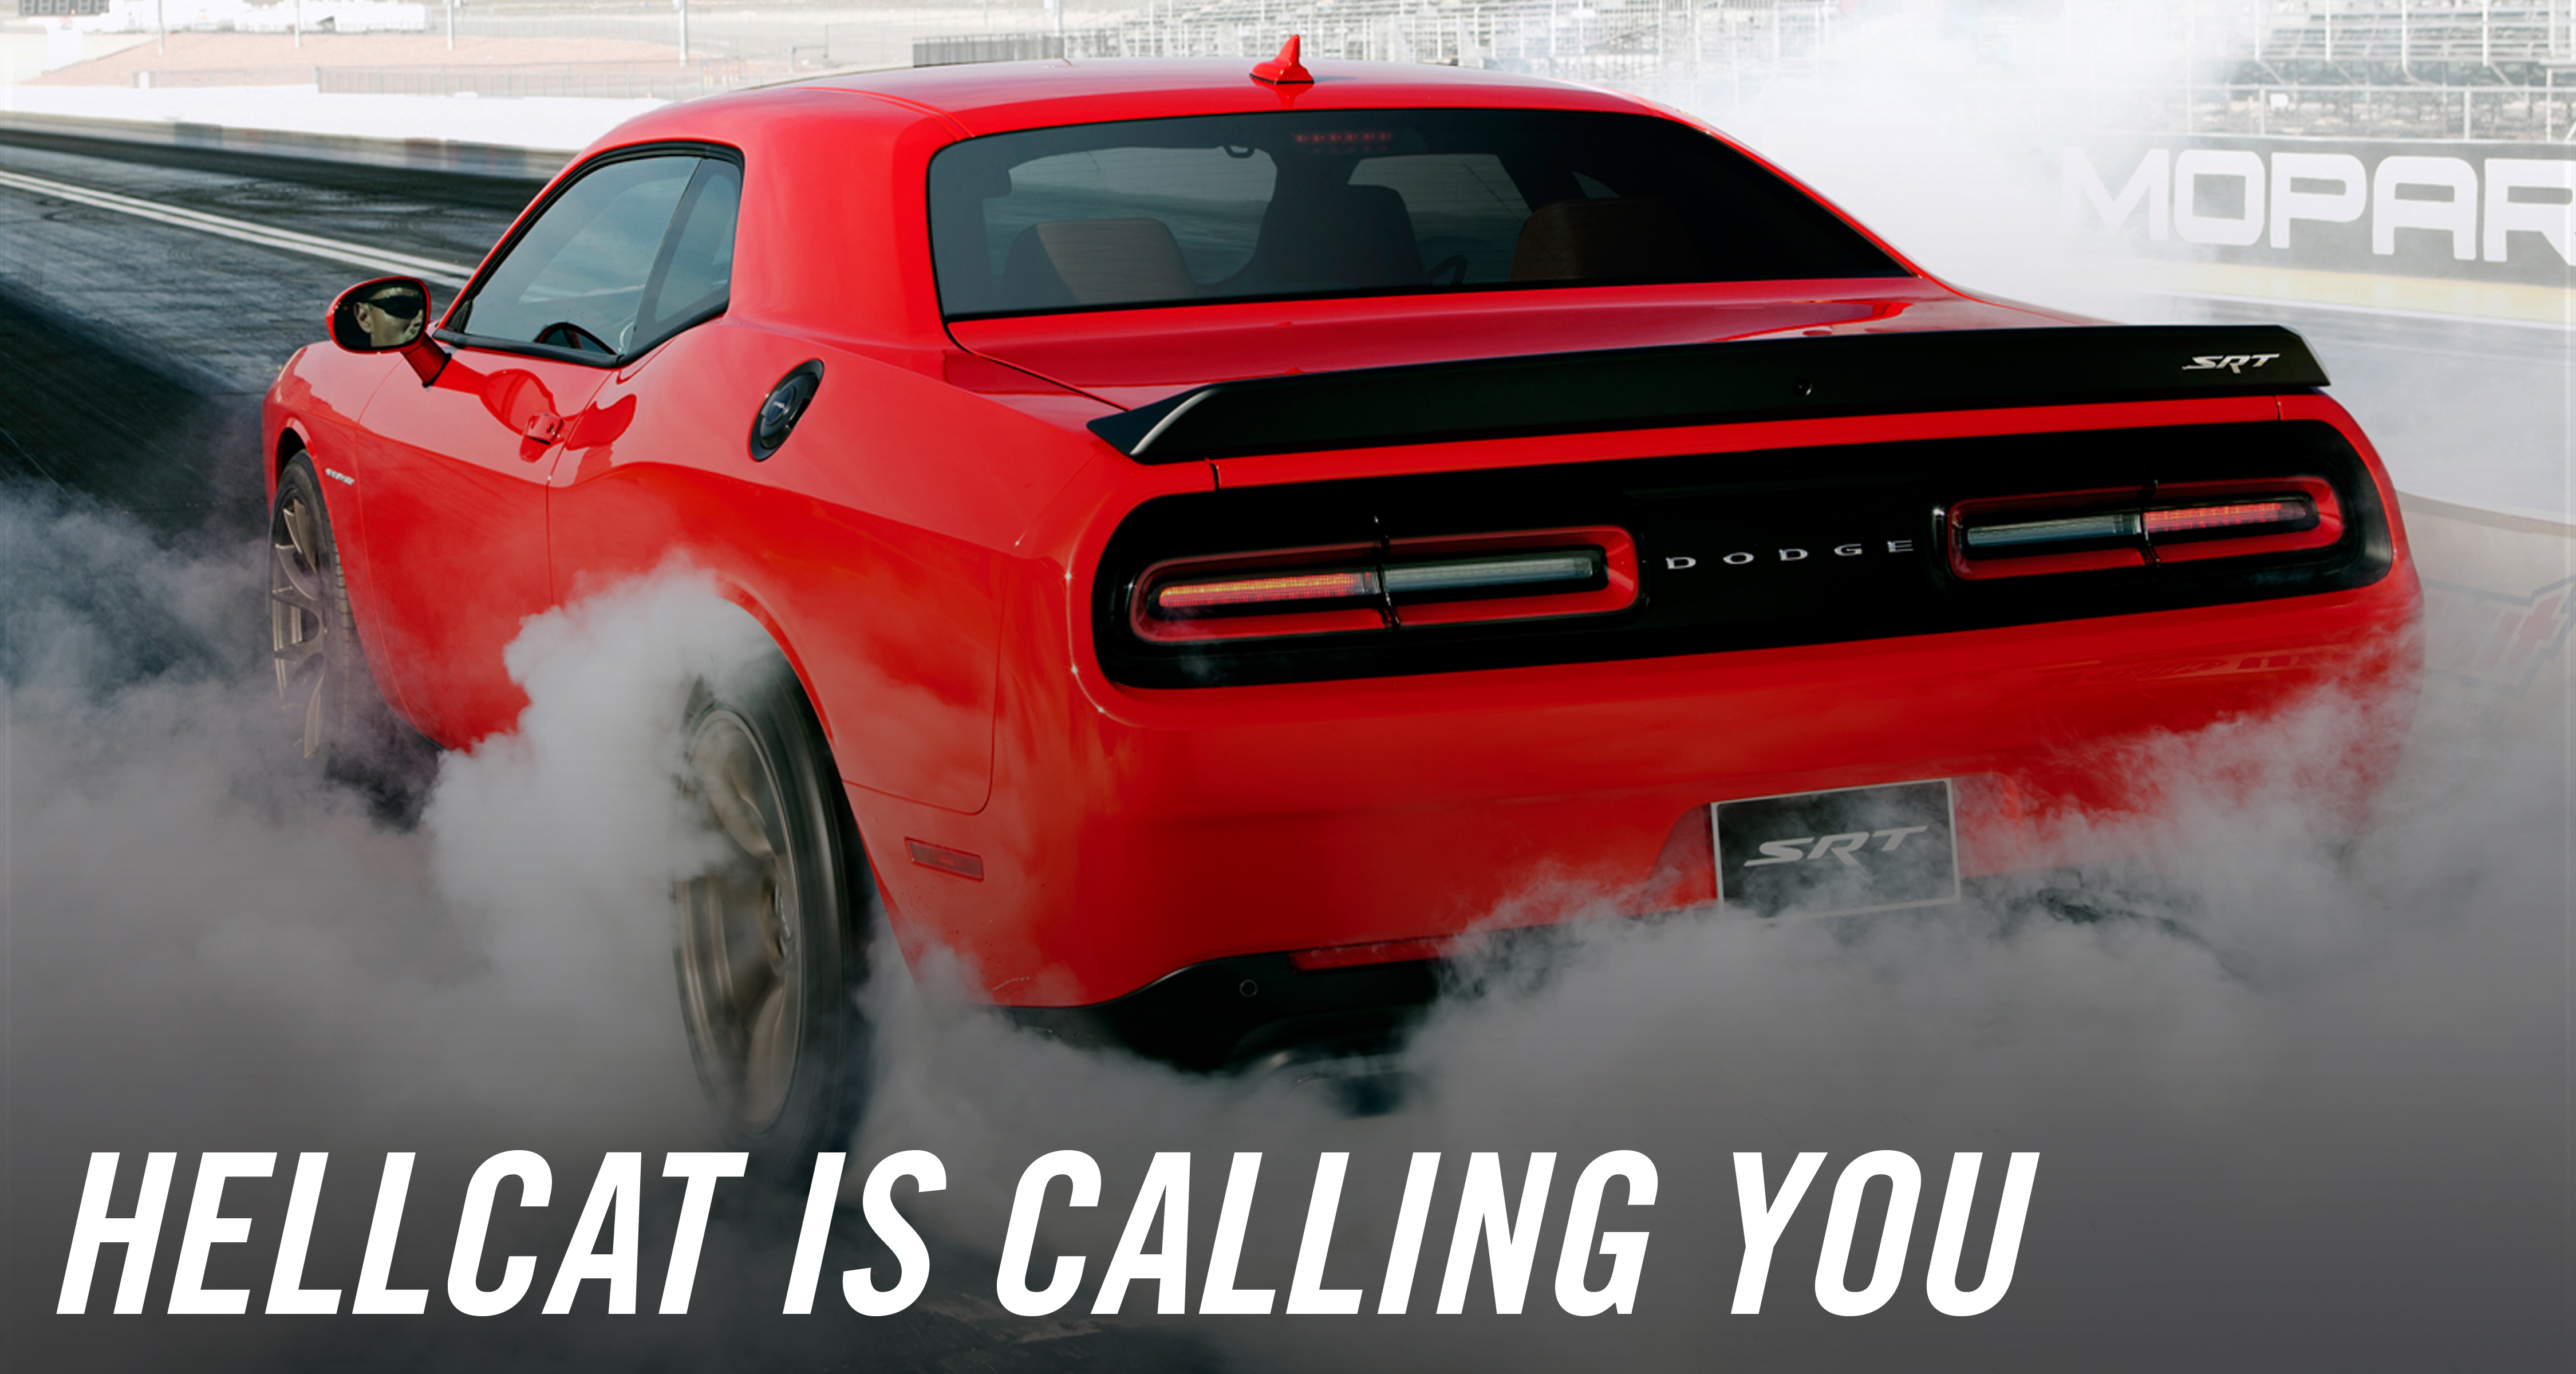 The all new Hellcat engine ringtone is calling you 4499x2400